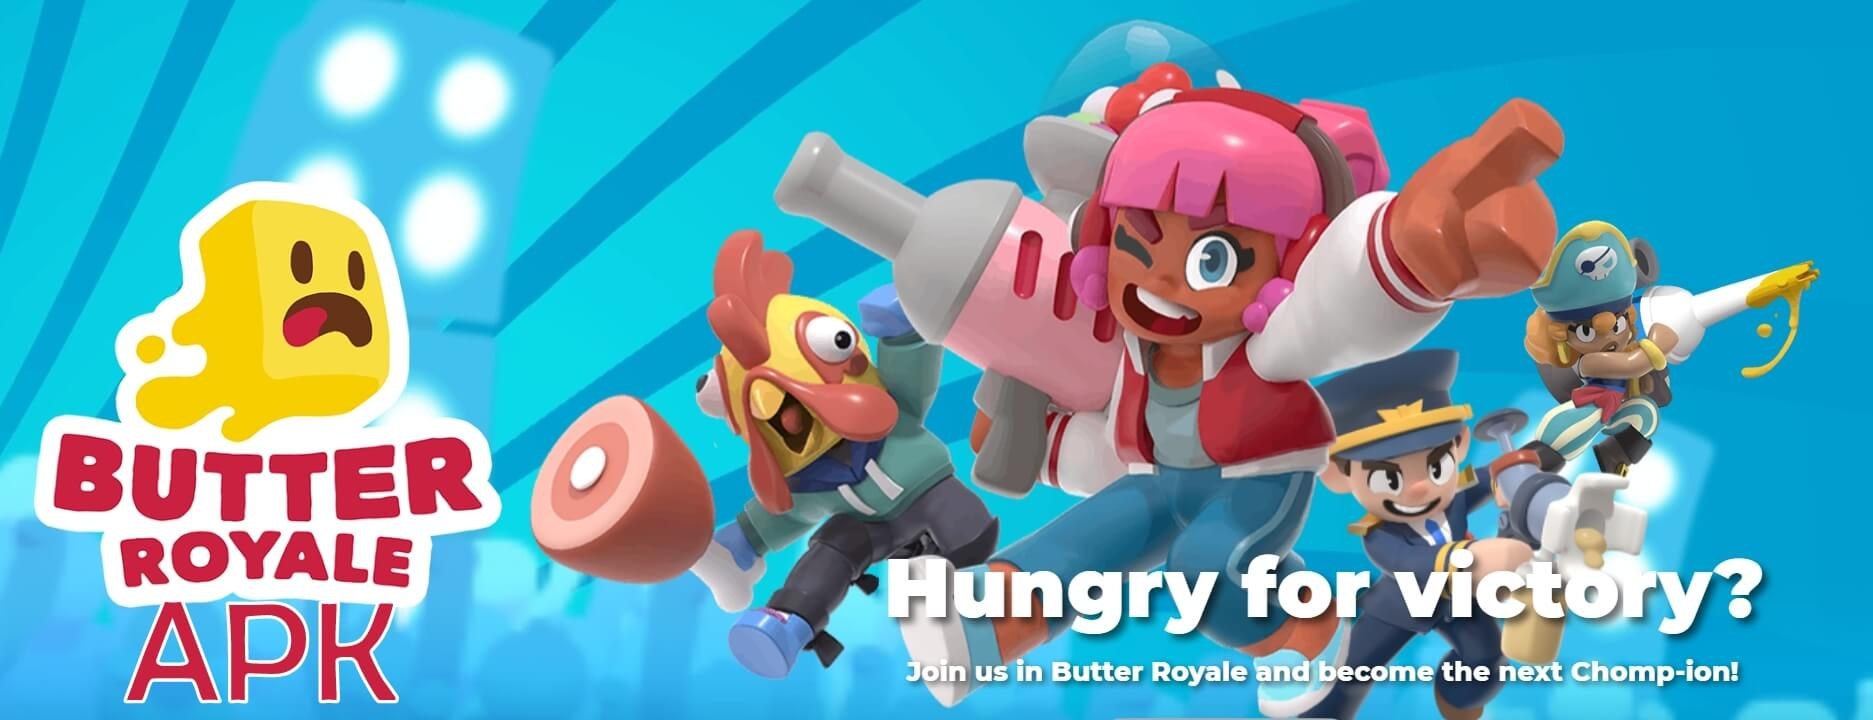 Butter Royale Apk v1.0.0 +OBB/Data for Android. [2020] 1